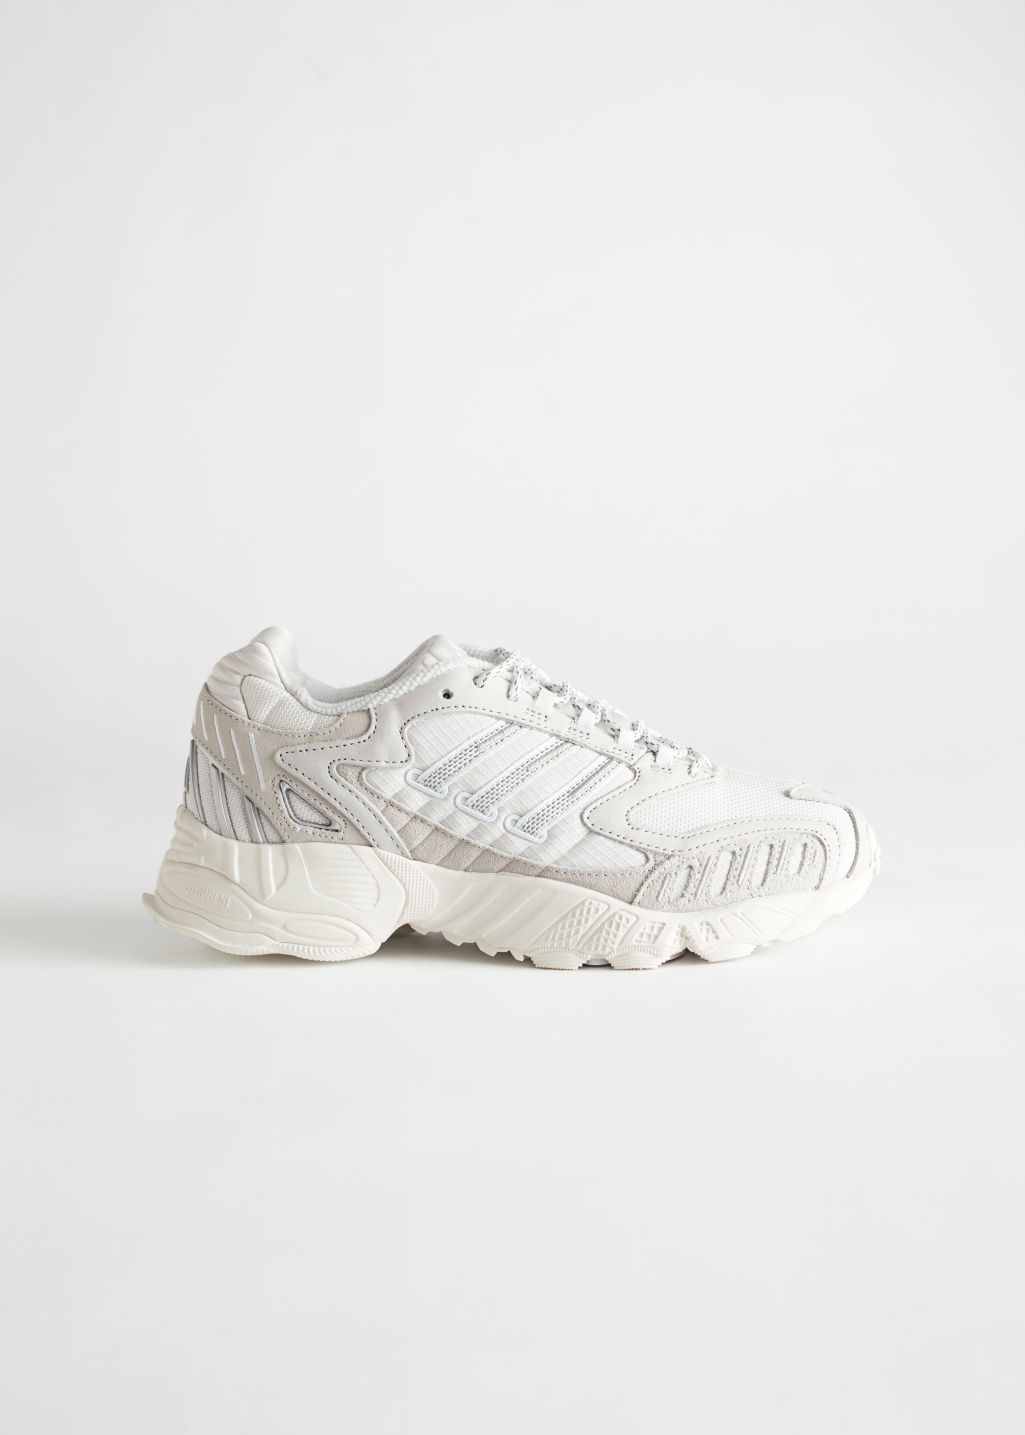 StillLife Side Image of Stories adidas Torsion TRDC in White